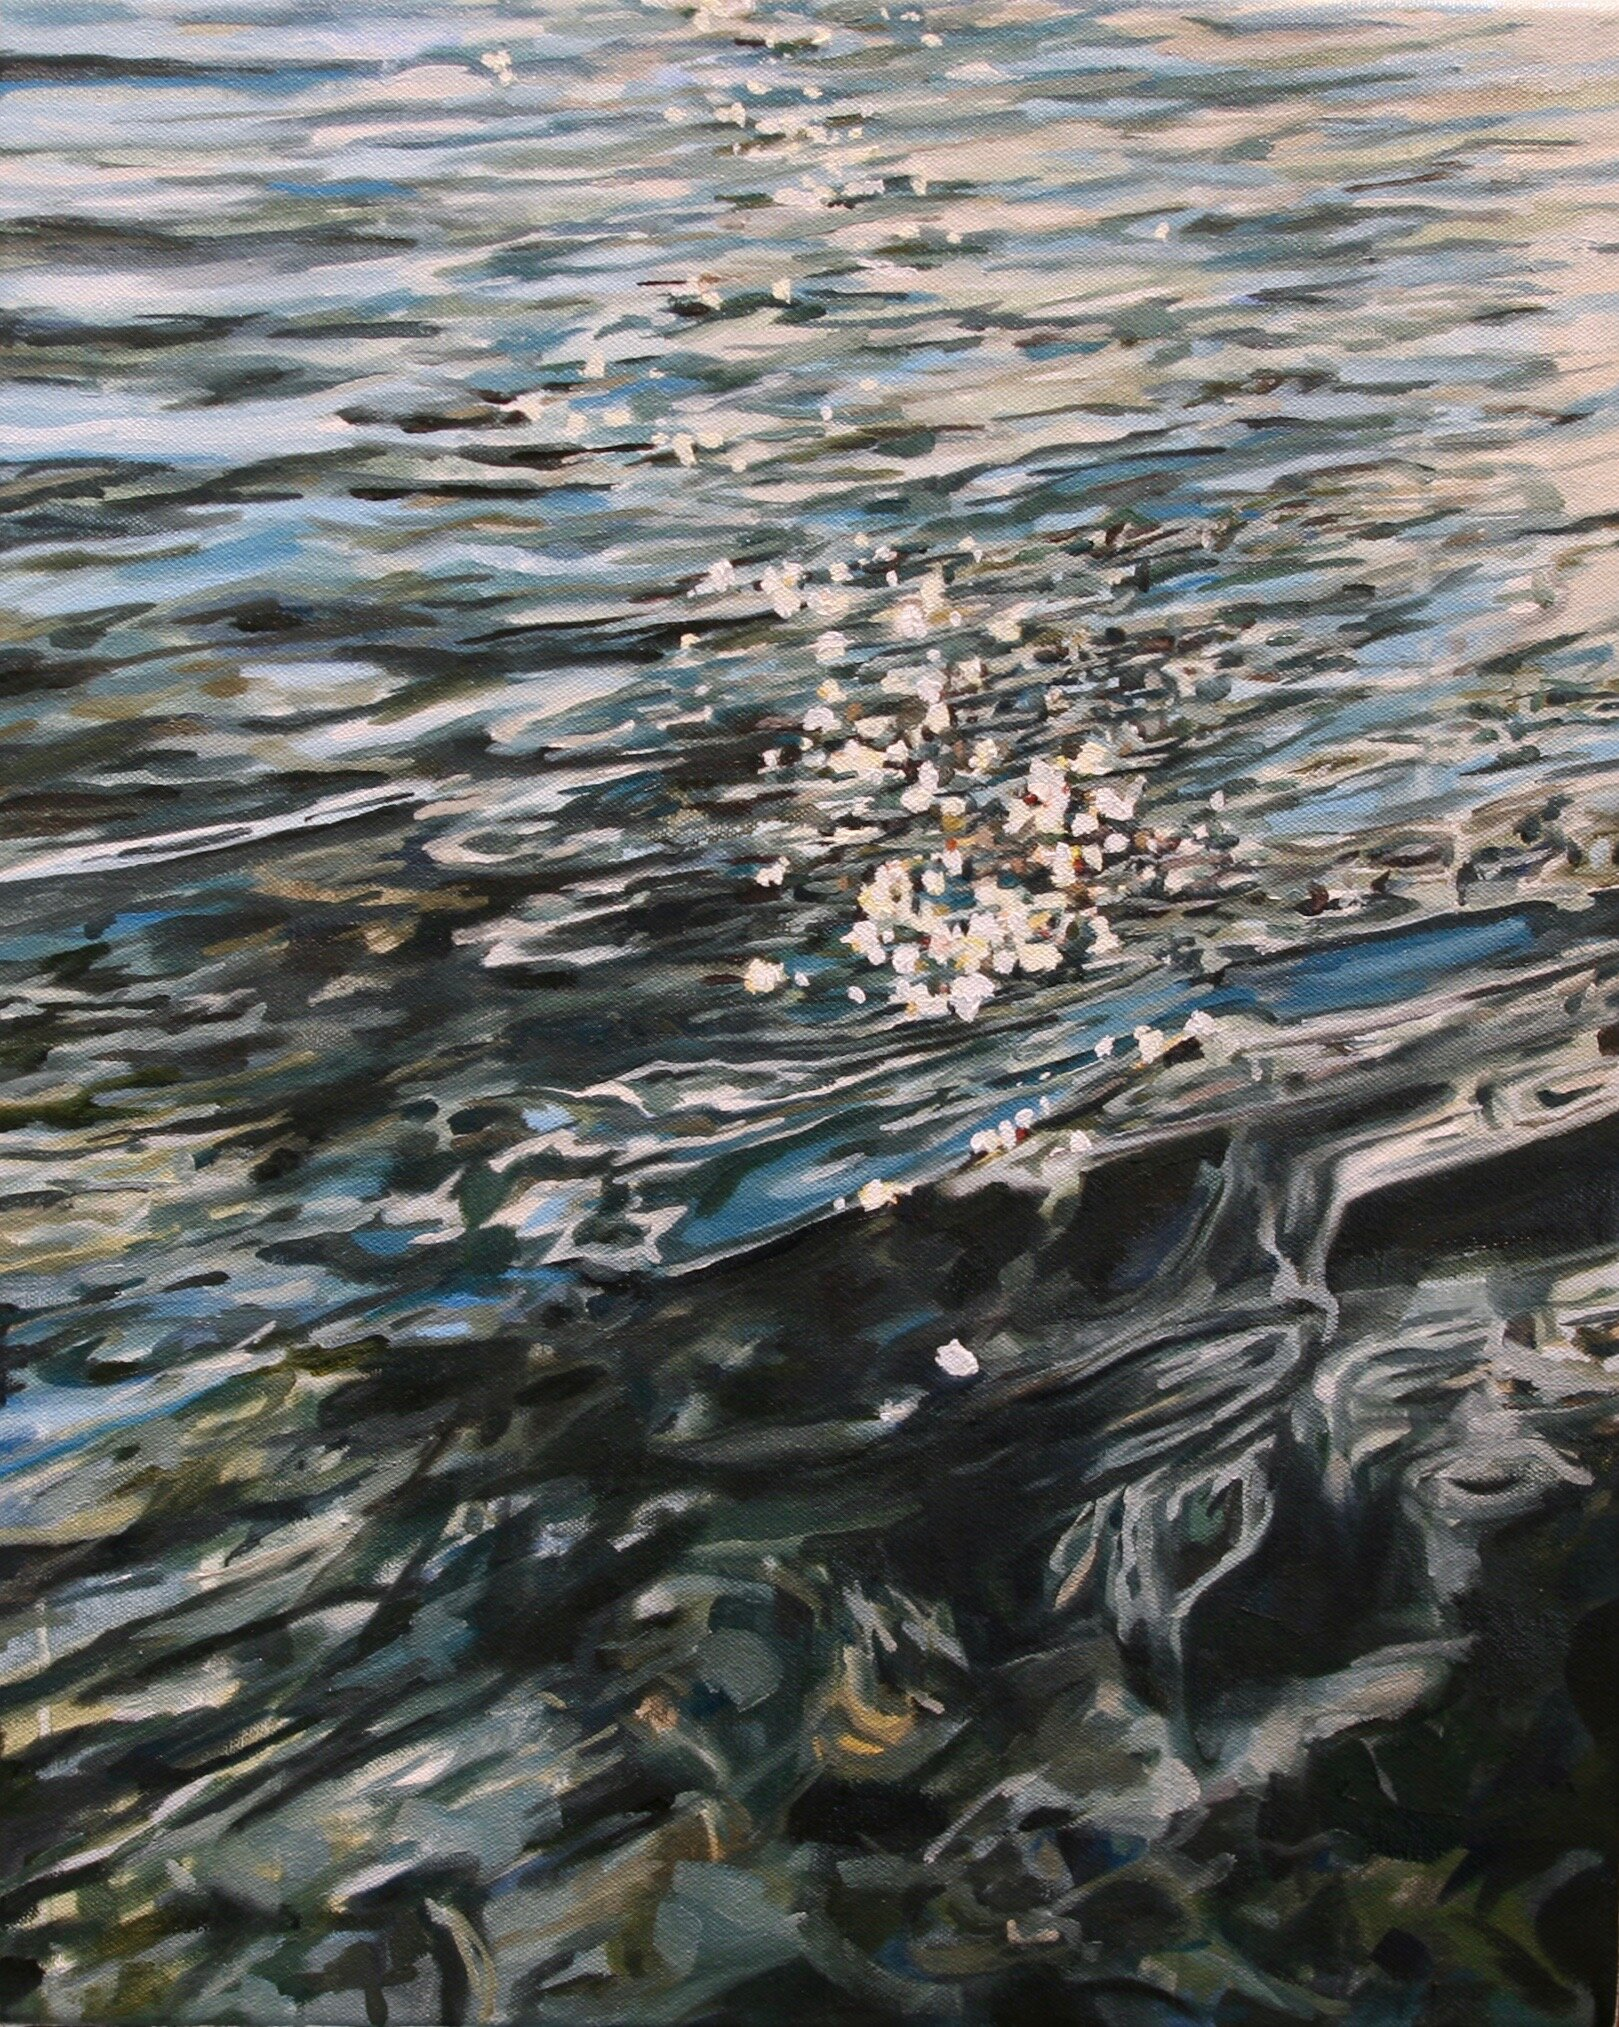 """'Quicksilver'  2017  16"""" x 20""""  water soluble oil on canvas  sold"""